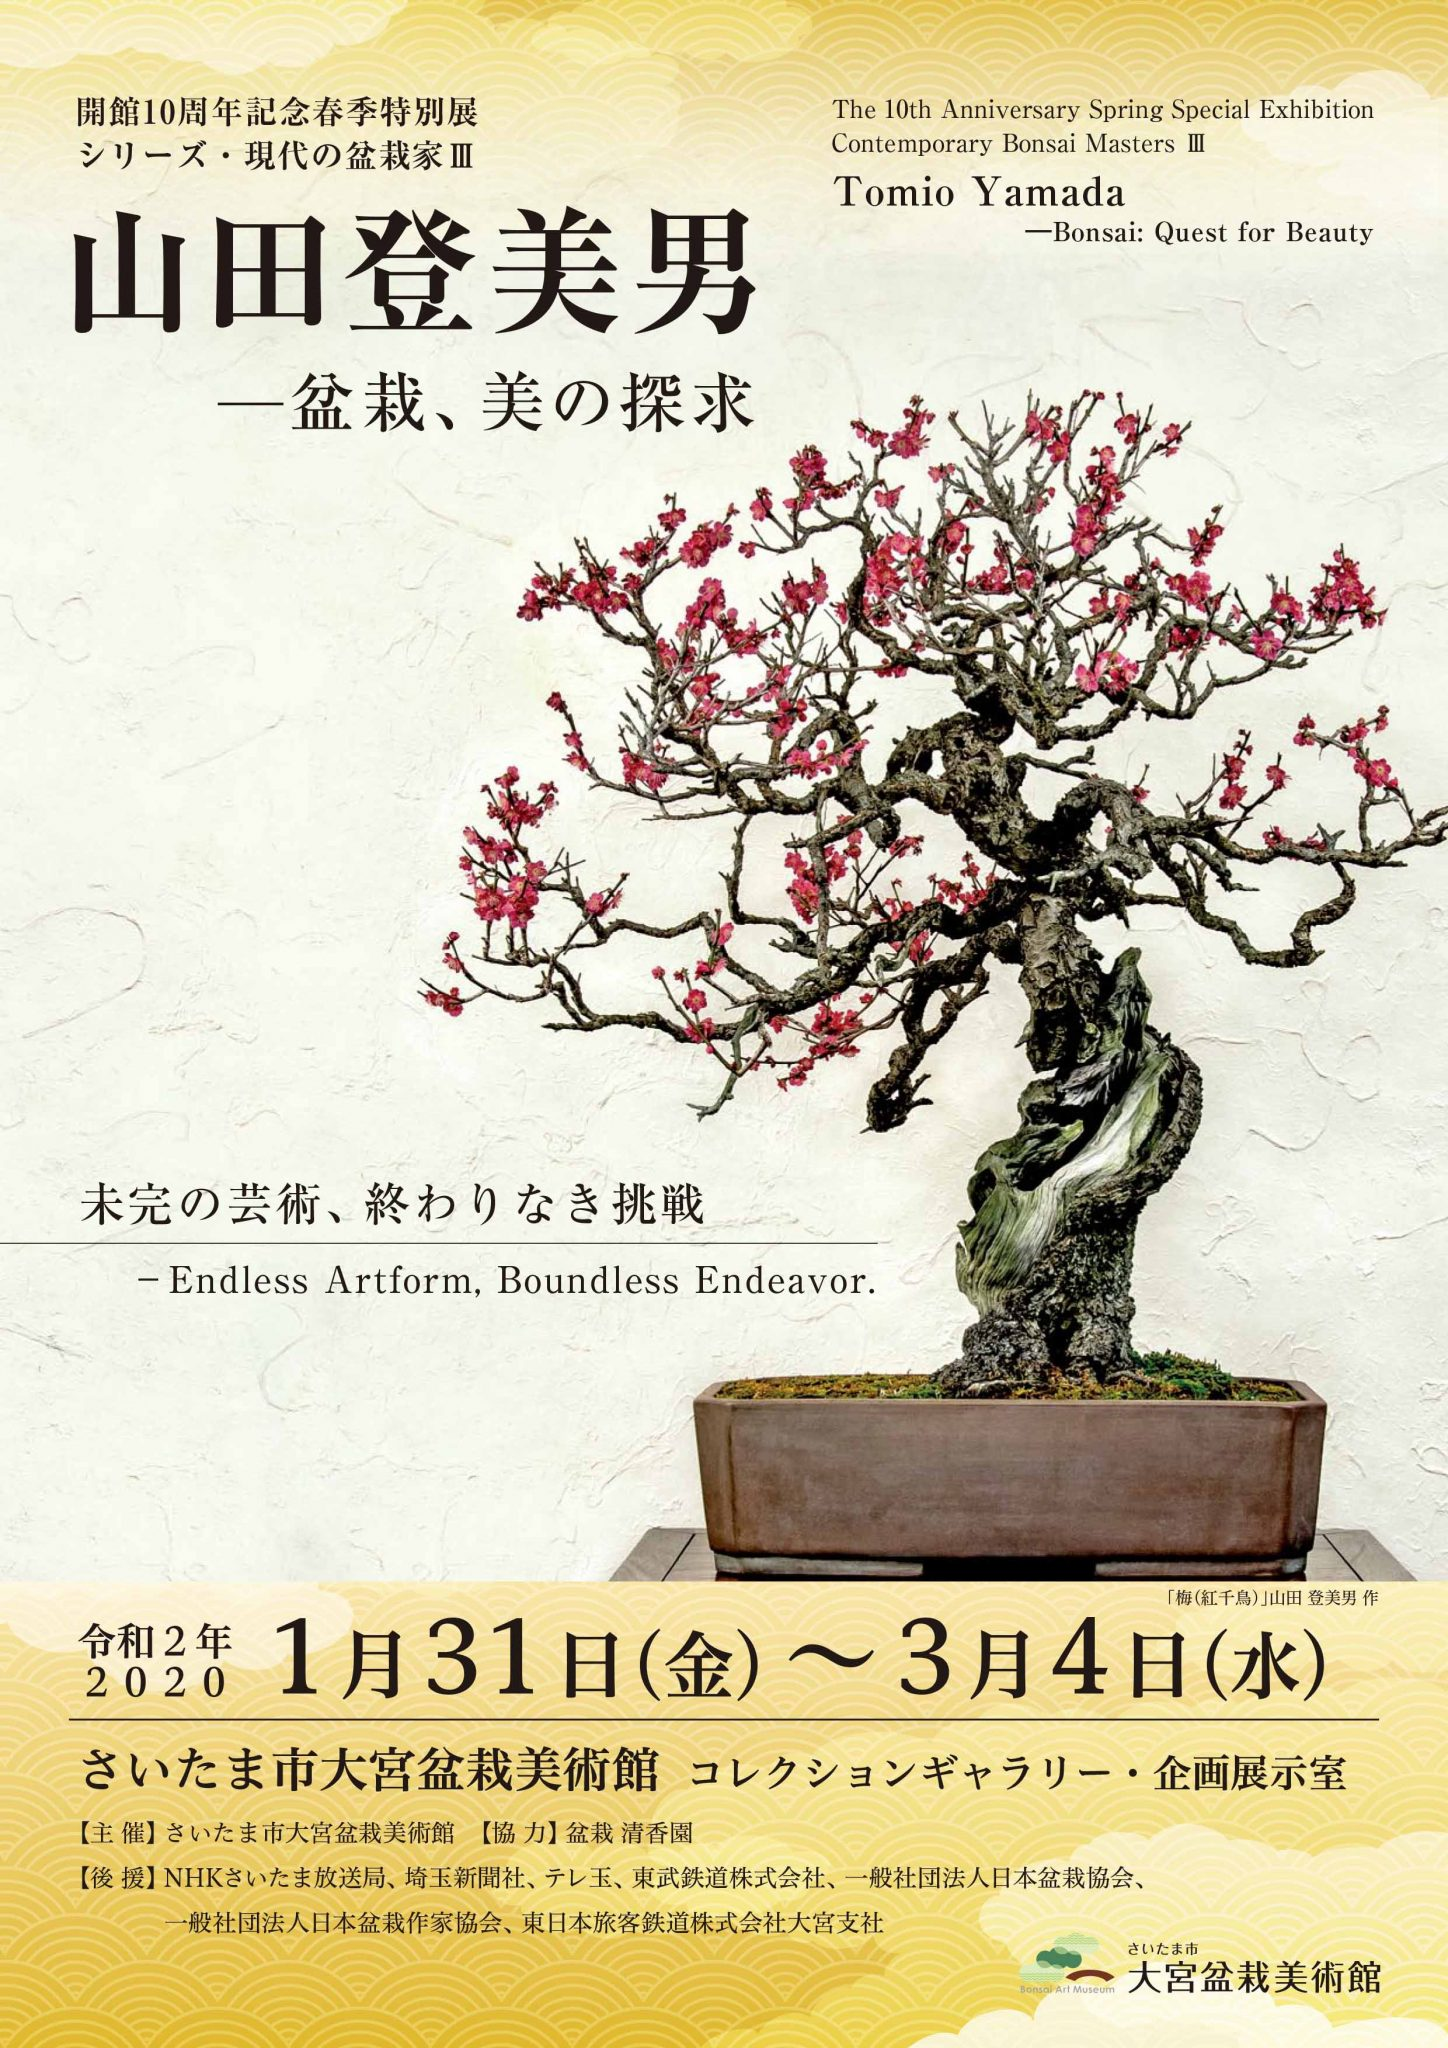 Contemporary Bonsai Masters Ⅲ Tomio Yamada―Bonsai: Quest for Beauty